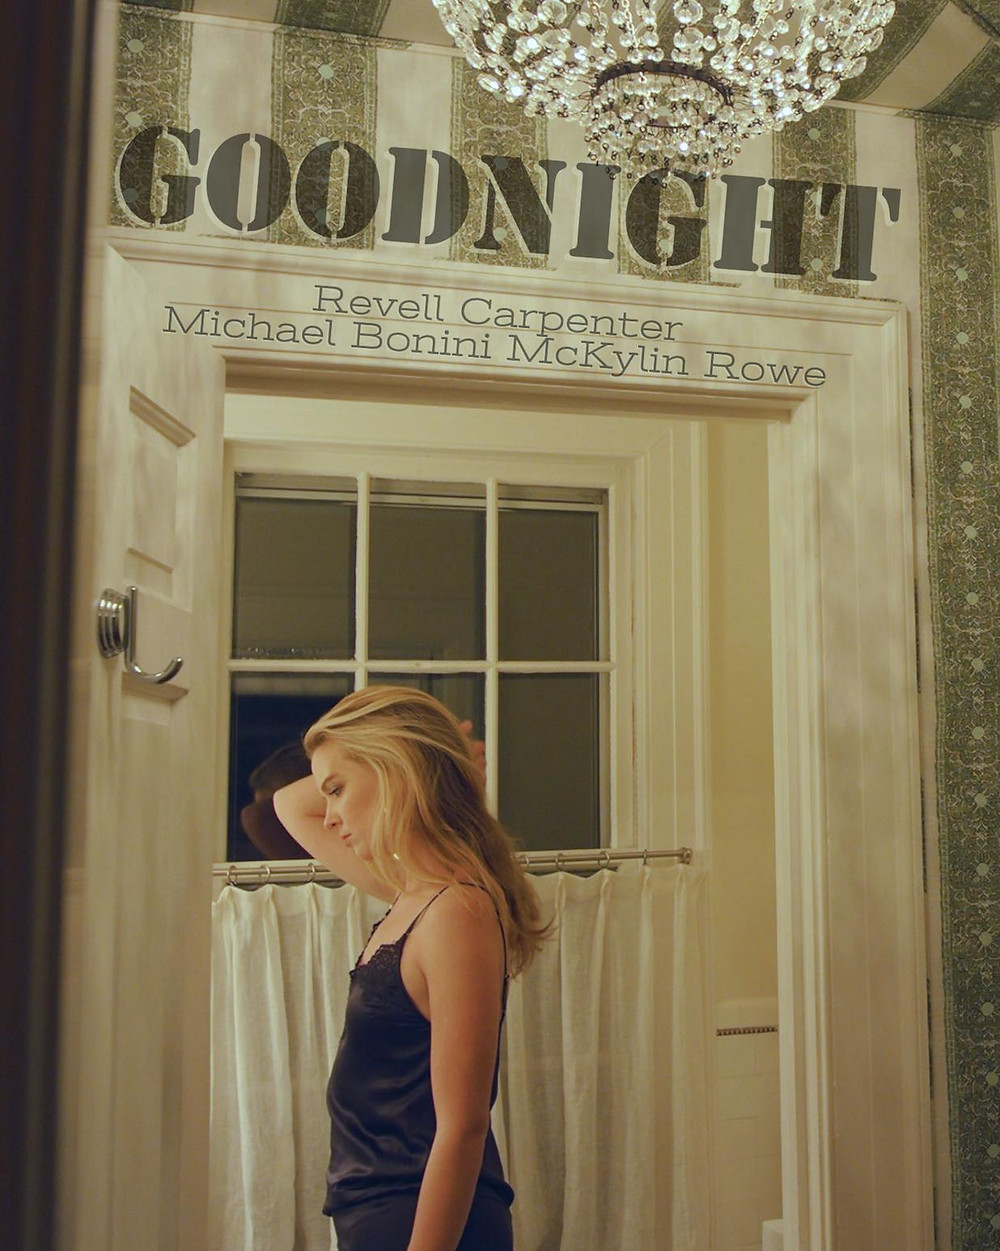 Poster for Goodnight showing protagonist.